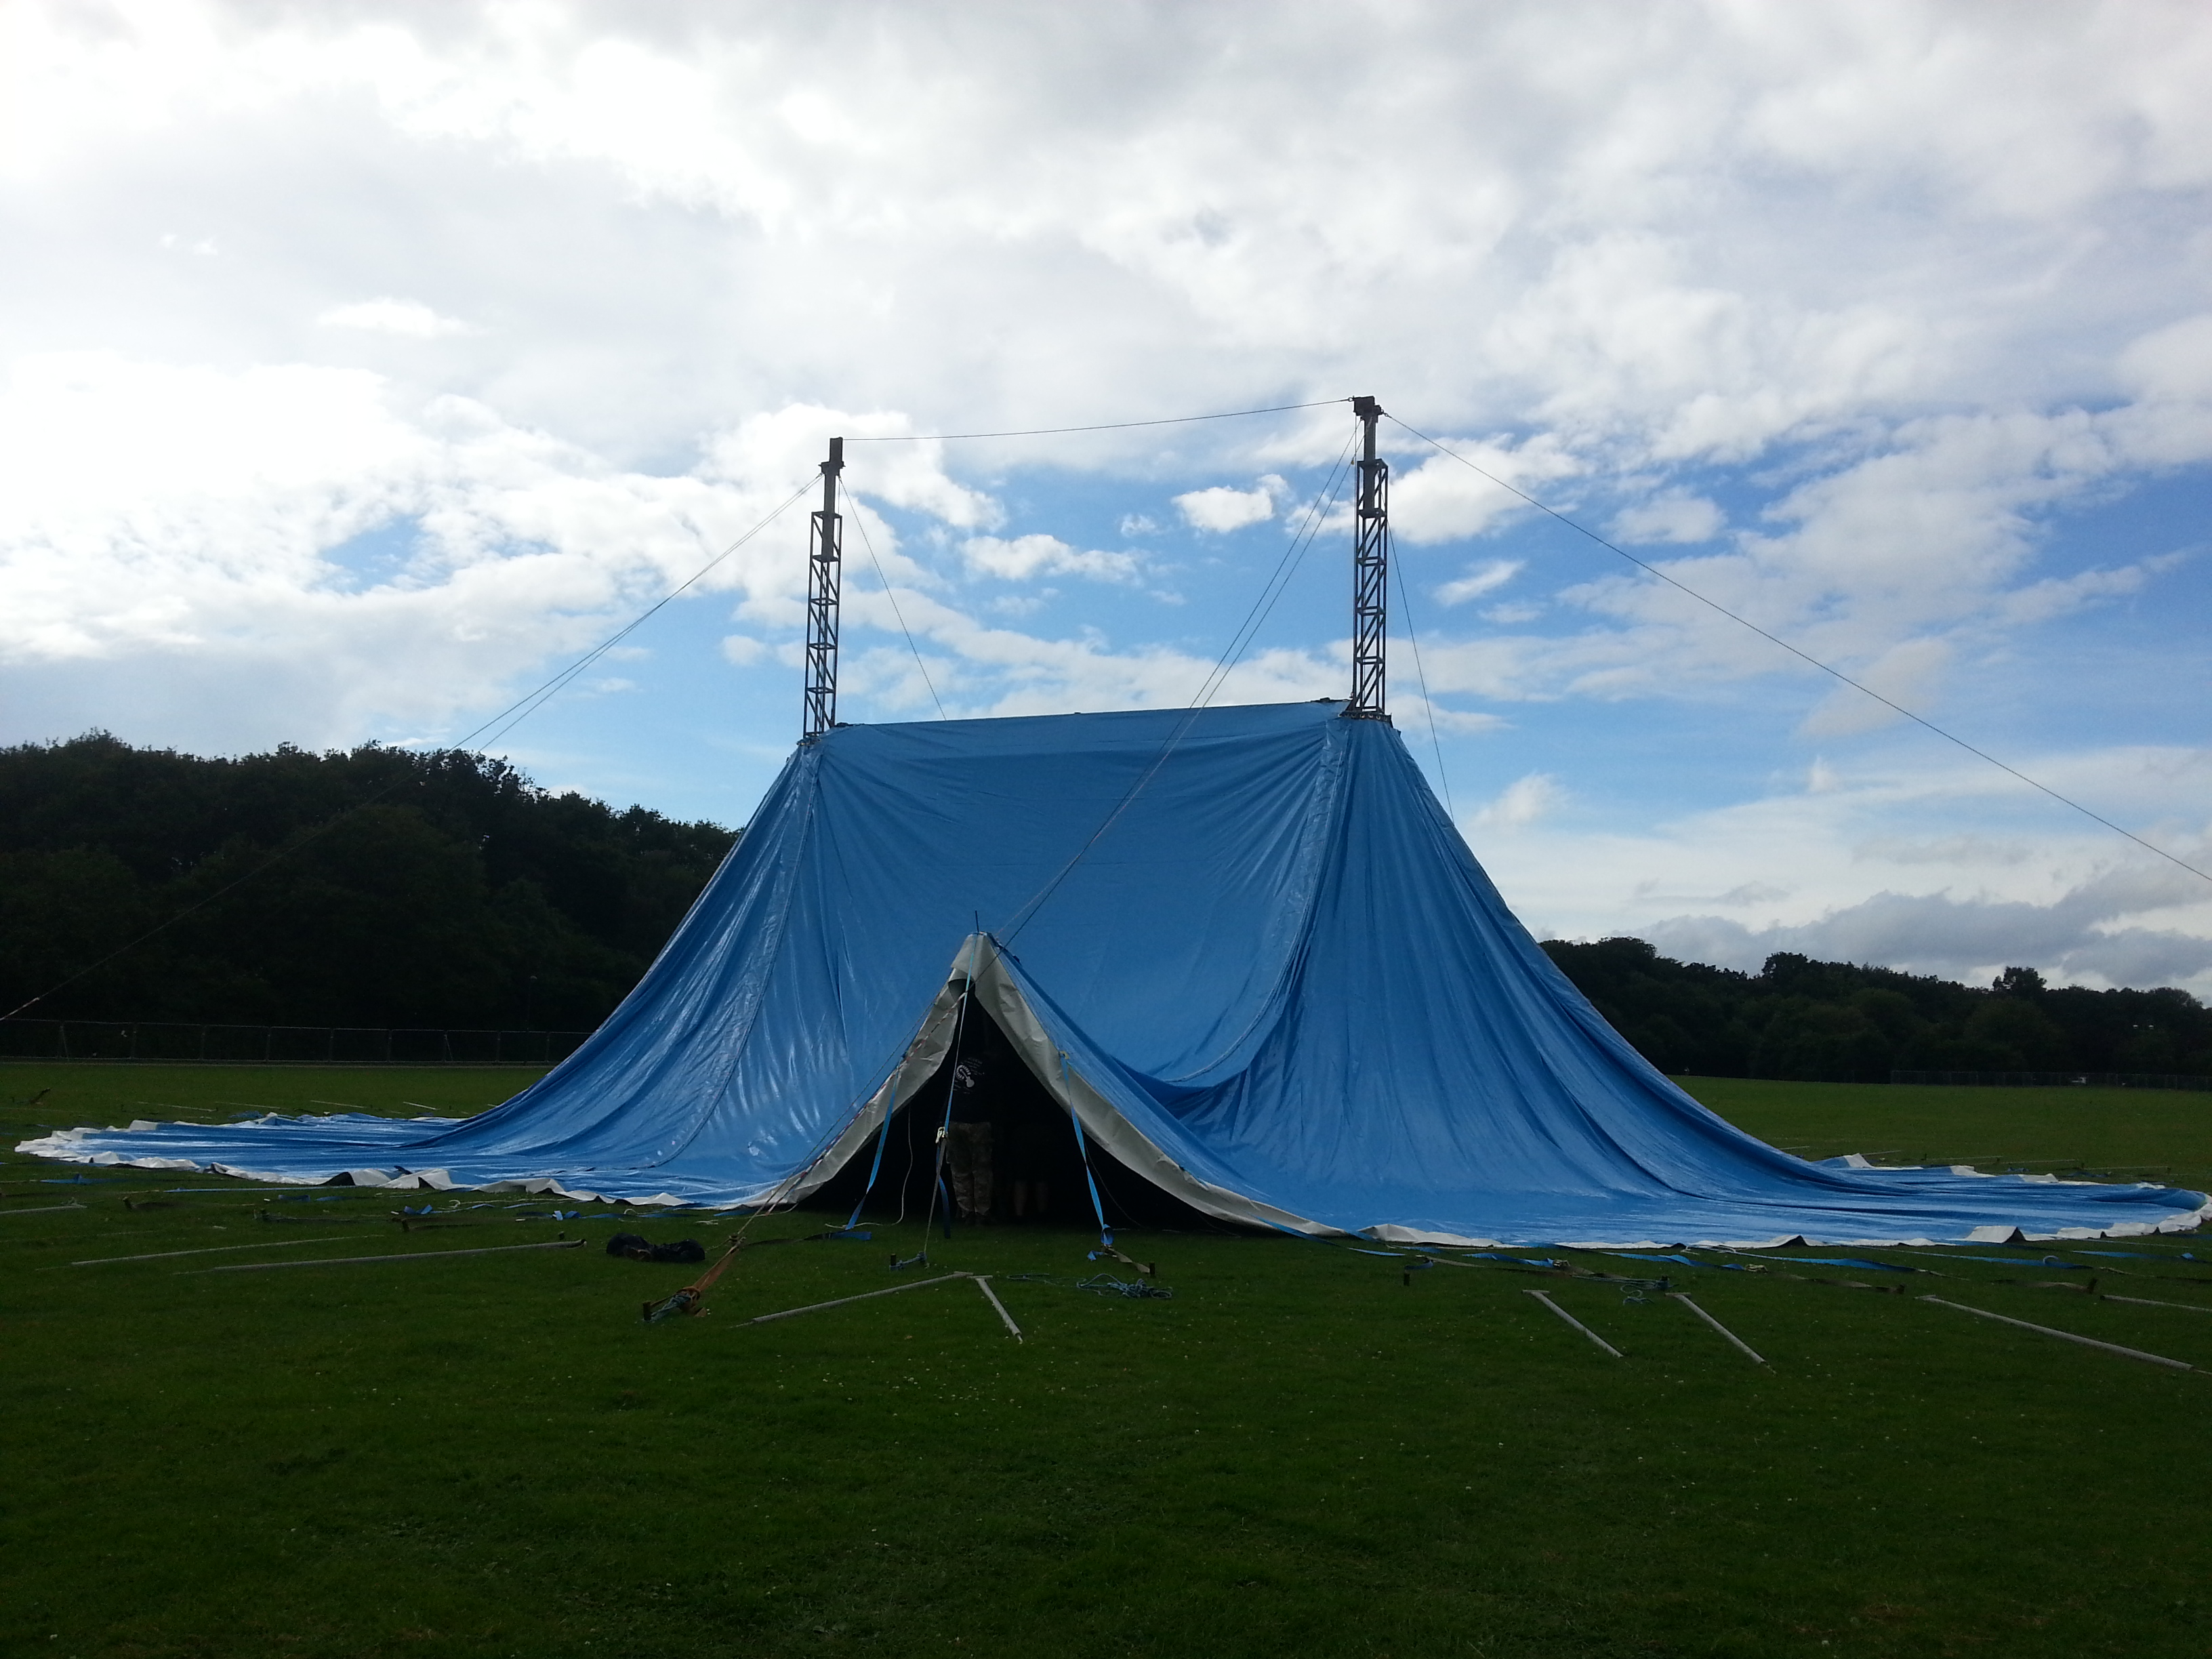 The original Worthy Farm made Blue Tent. & New Blue Tent | Albion Woods